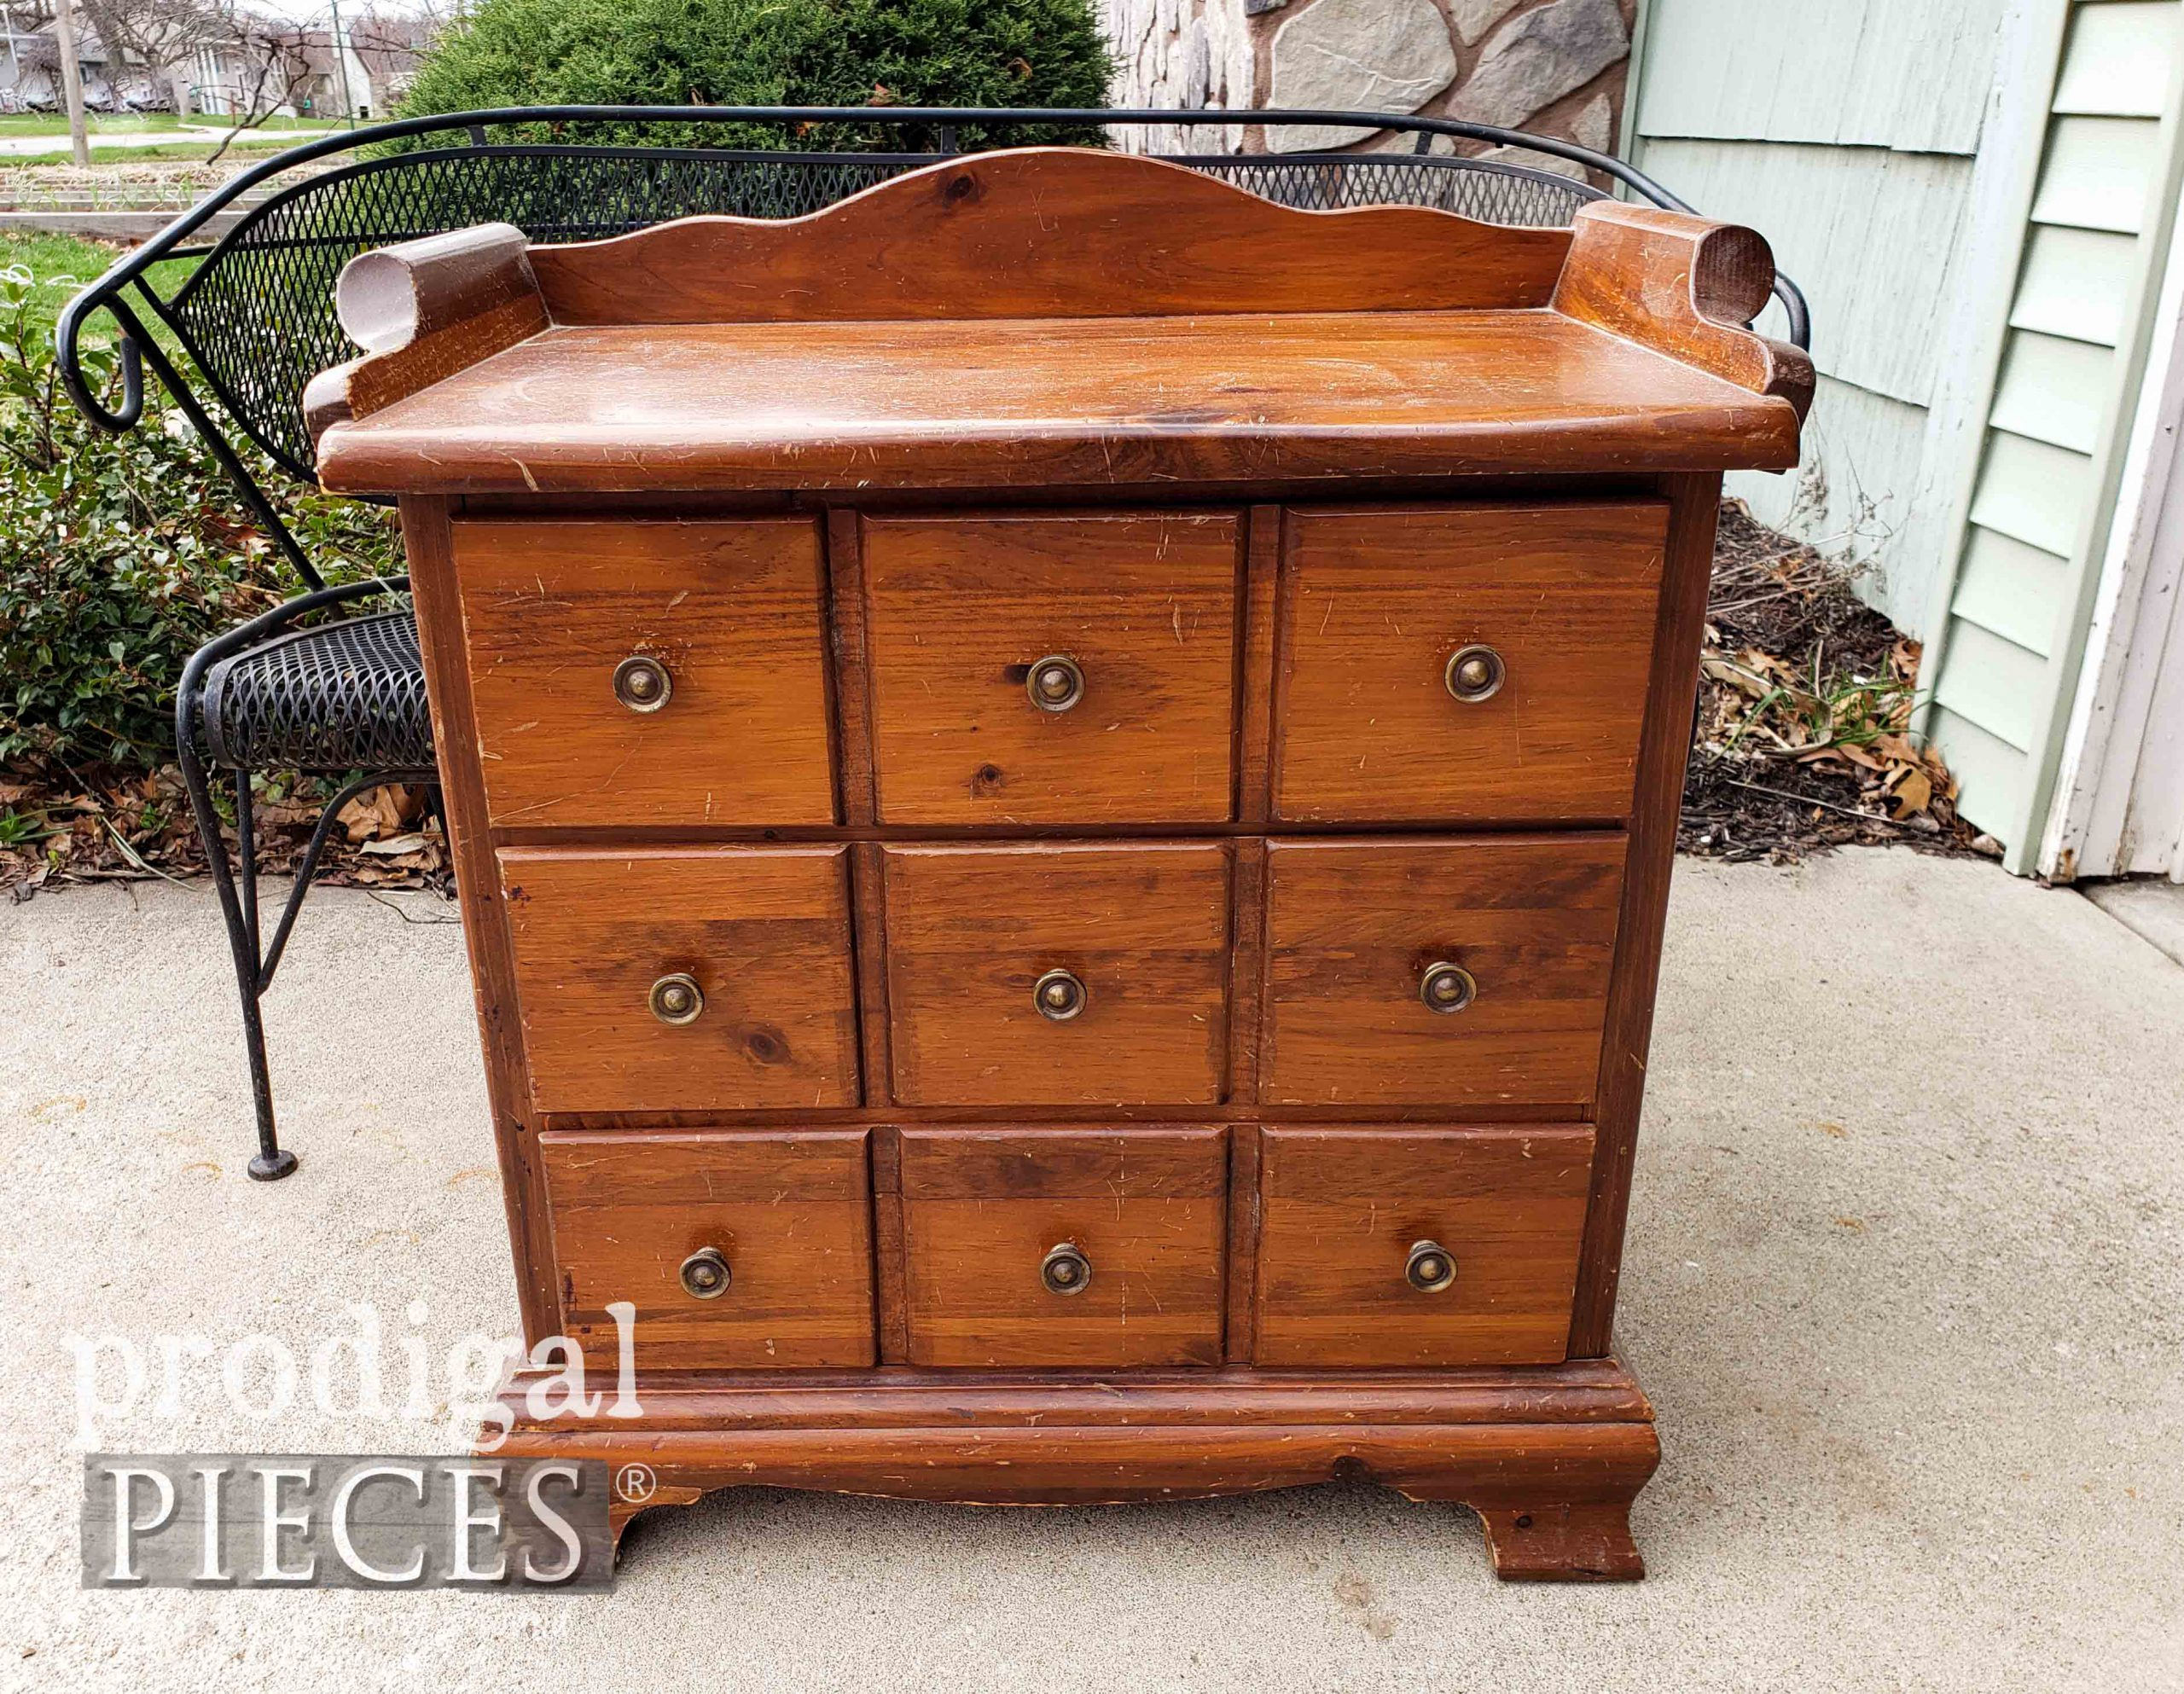 Vintage Farmhouse Chest Nightstand Before by Prodigal Pieces   prodigalpieces.com #prodigalpieces